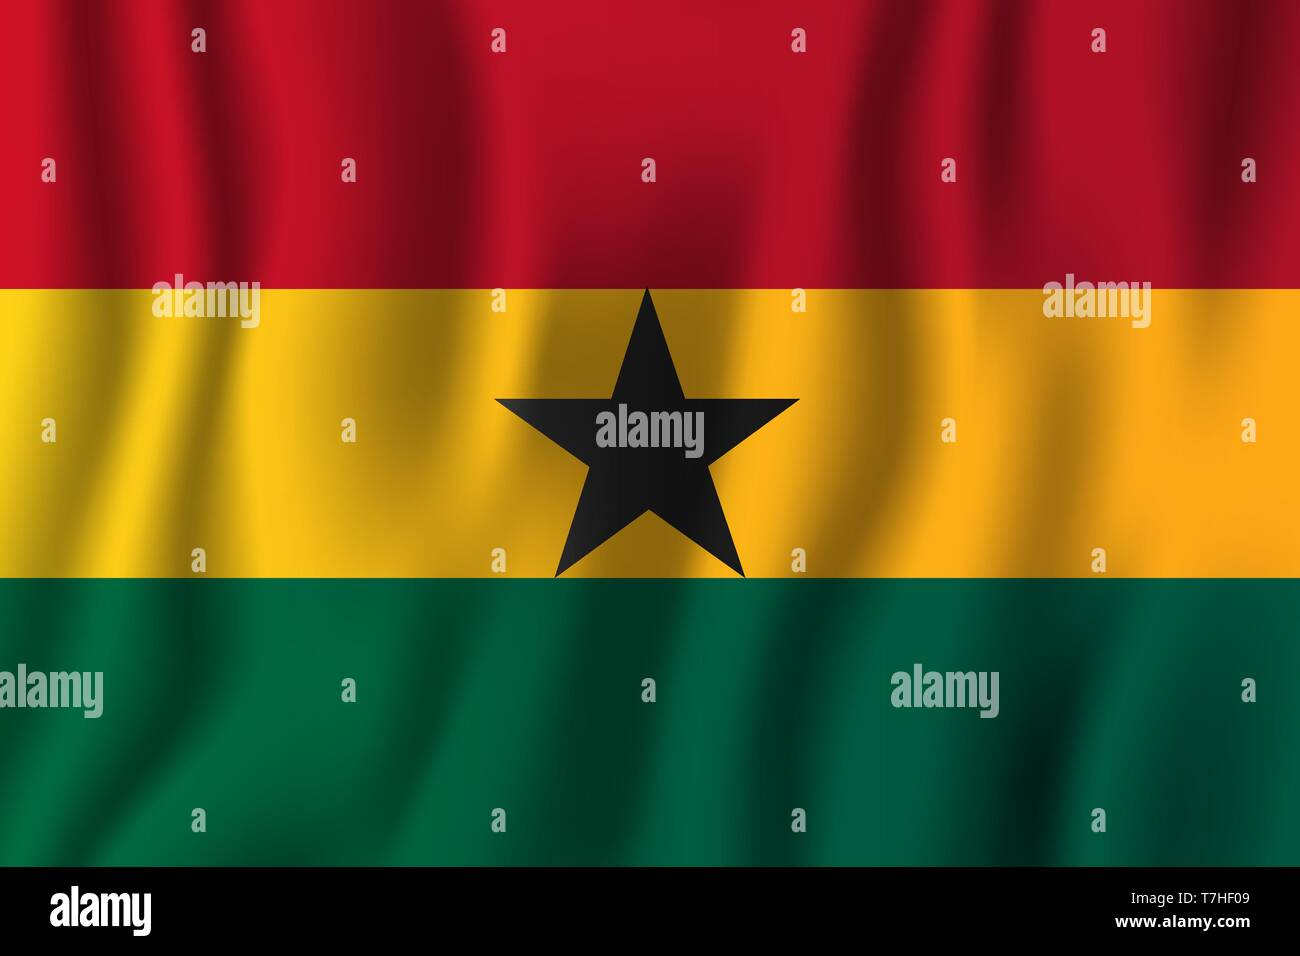 Ghana realistic waving flag vector illustration. National country background symbol. Independence day. - Stock Vector